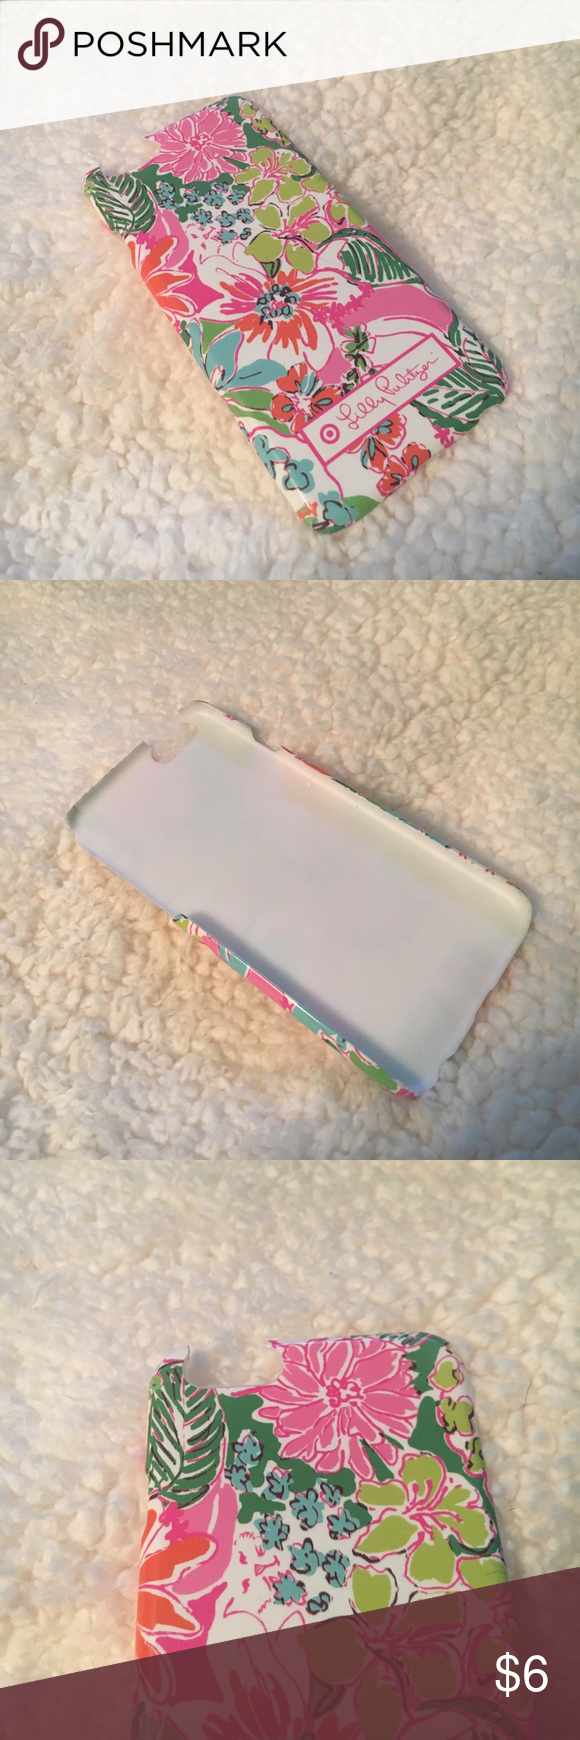 iPhone 6/6s Lilly Pulitzer for Target case iPhone 6/6s ...